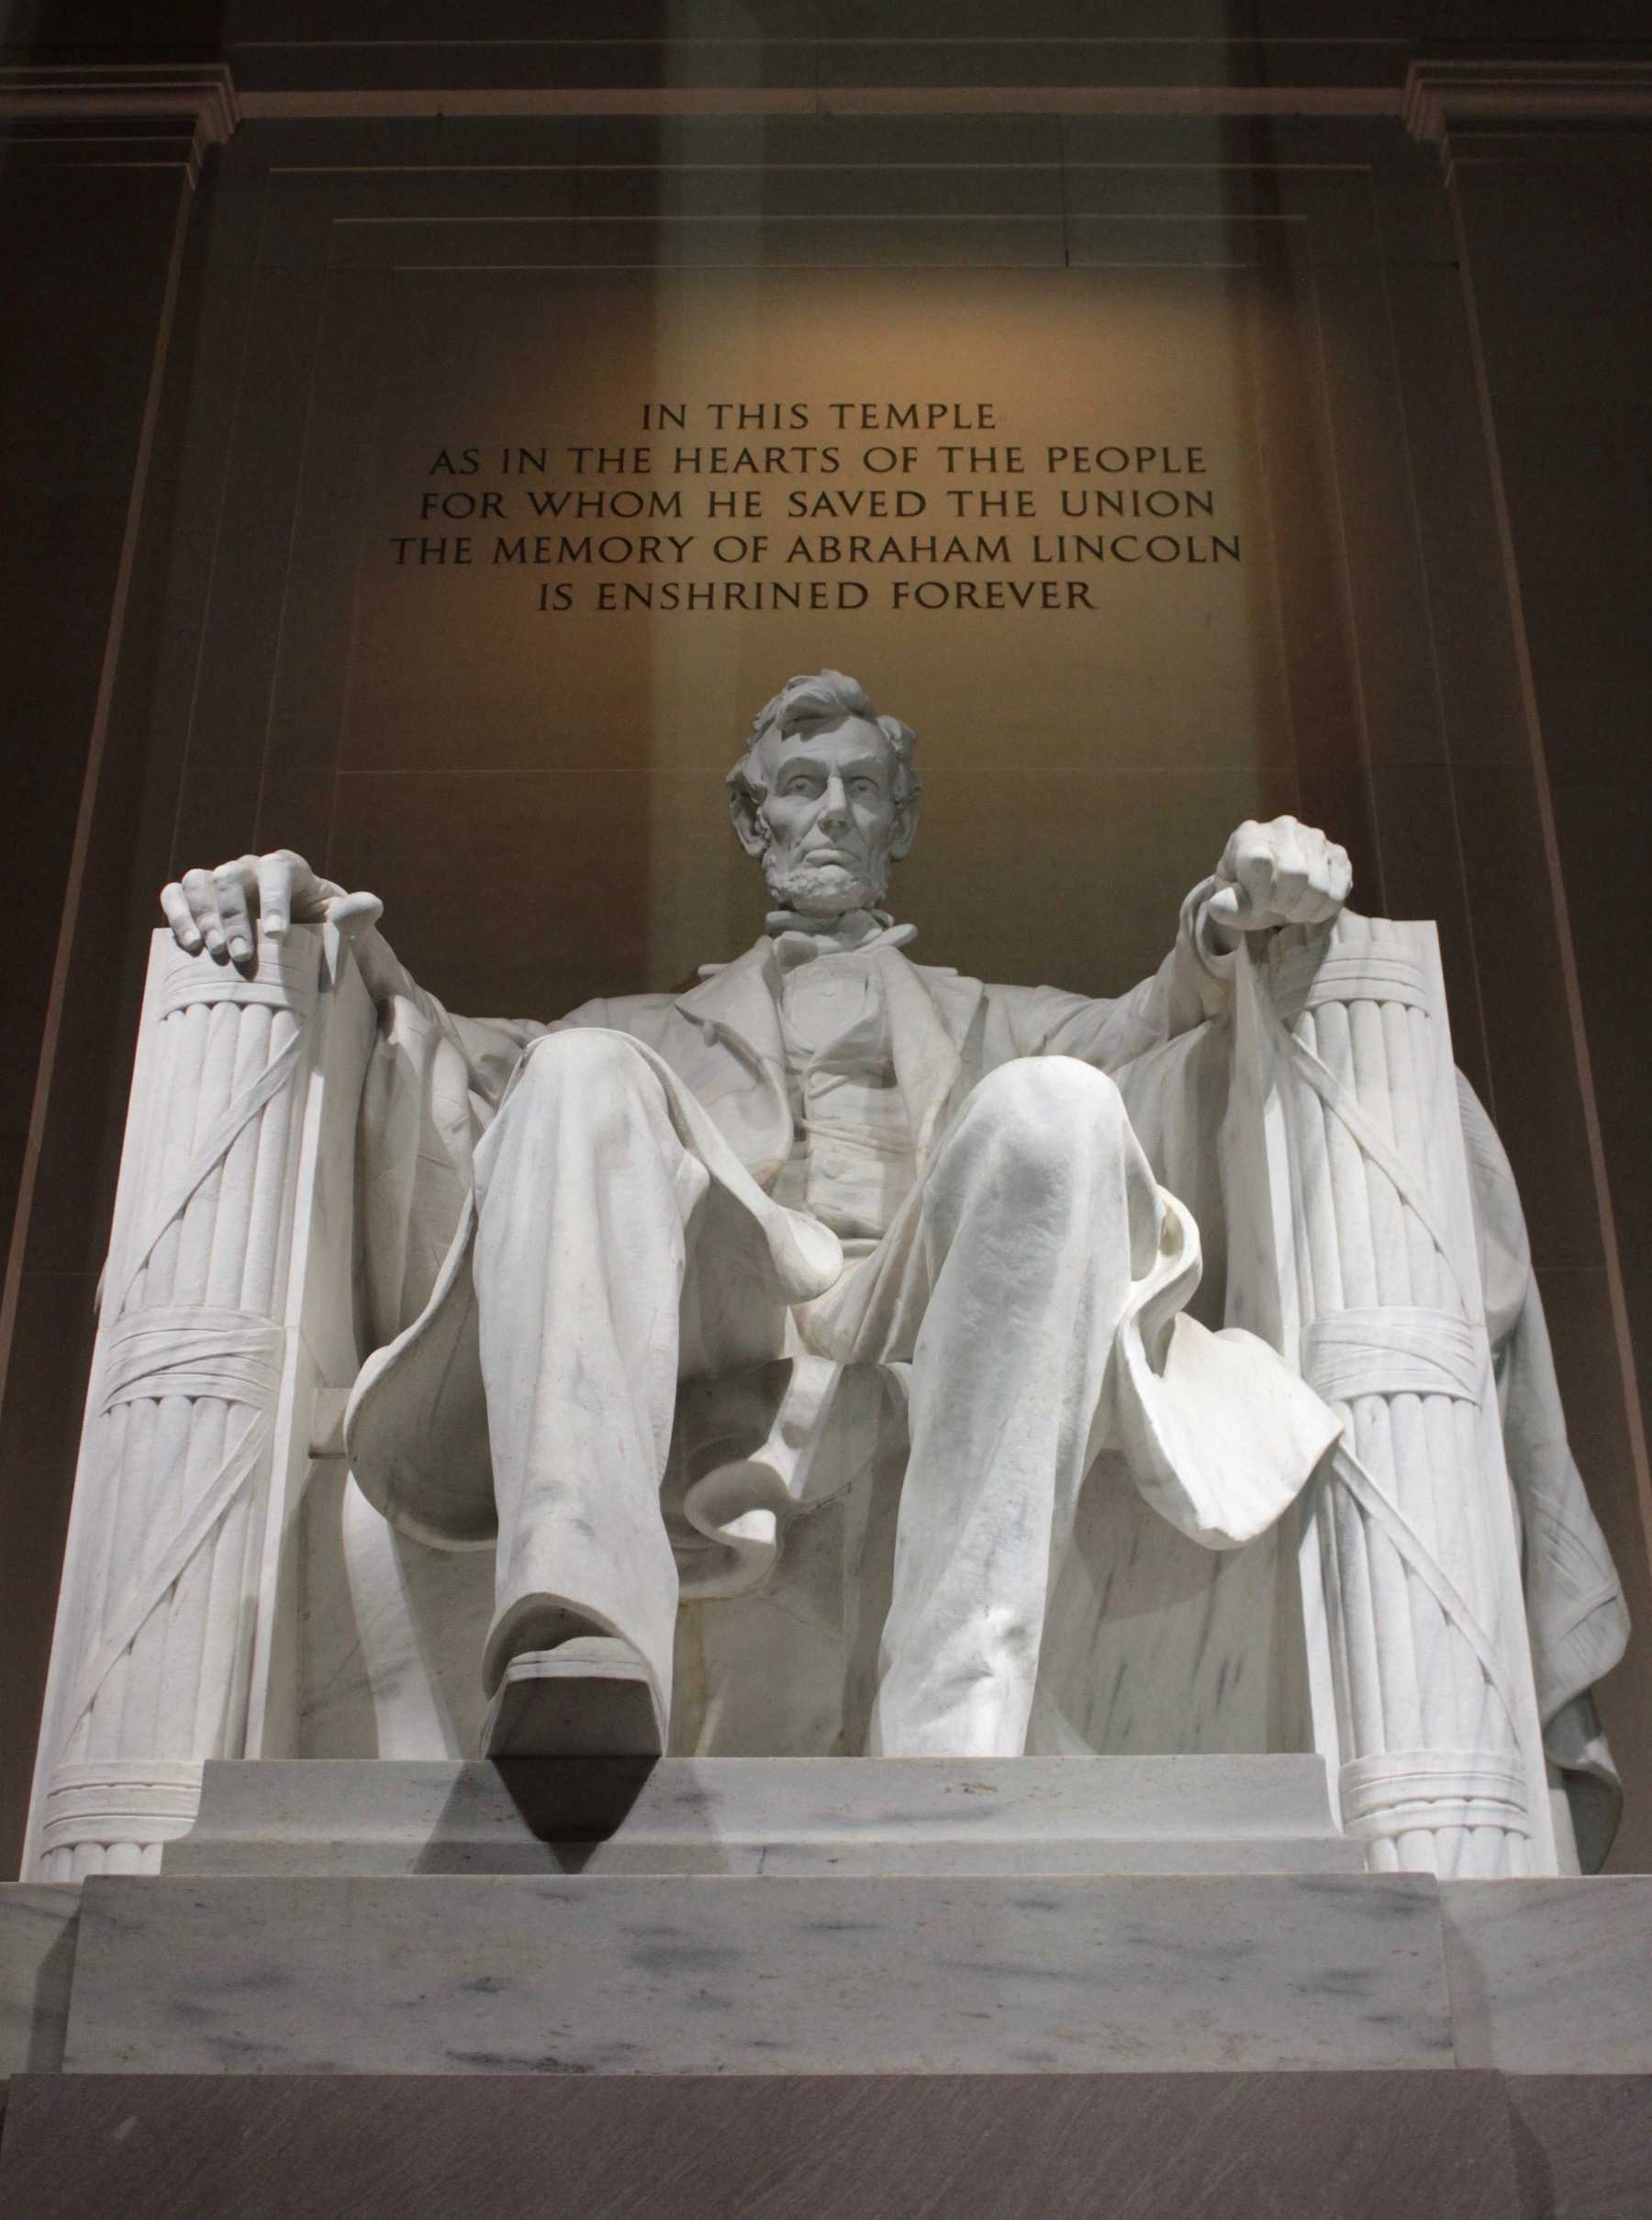 %22Fourscore+and+seven+years+ago+our+fathers+brought+forth+on+this+continent%2C+a+new+nation%2C+conceived+in+Liberty%2C+and+dedicated+to+the+proposition+that+all+men+are+created+equal.%22